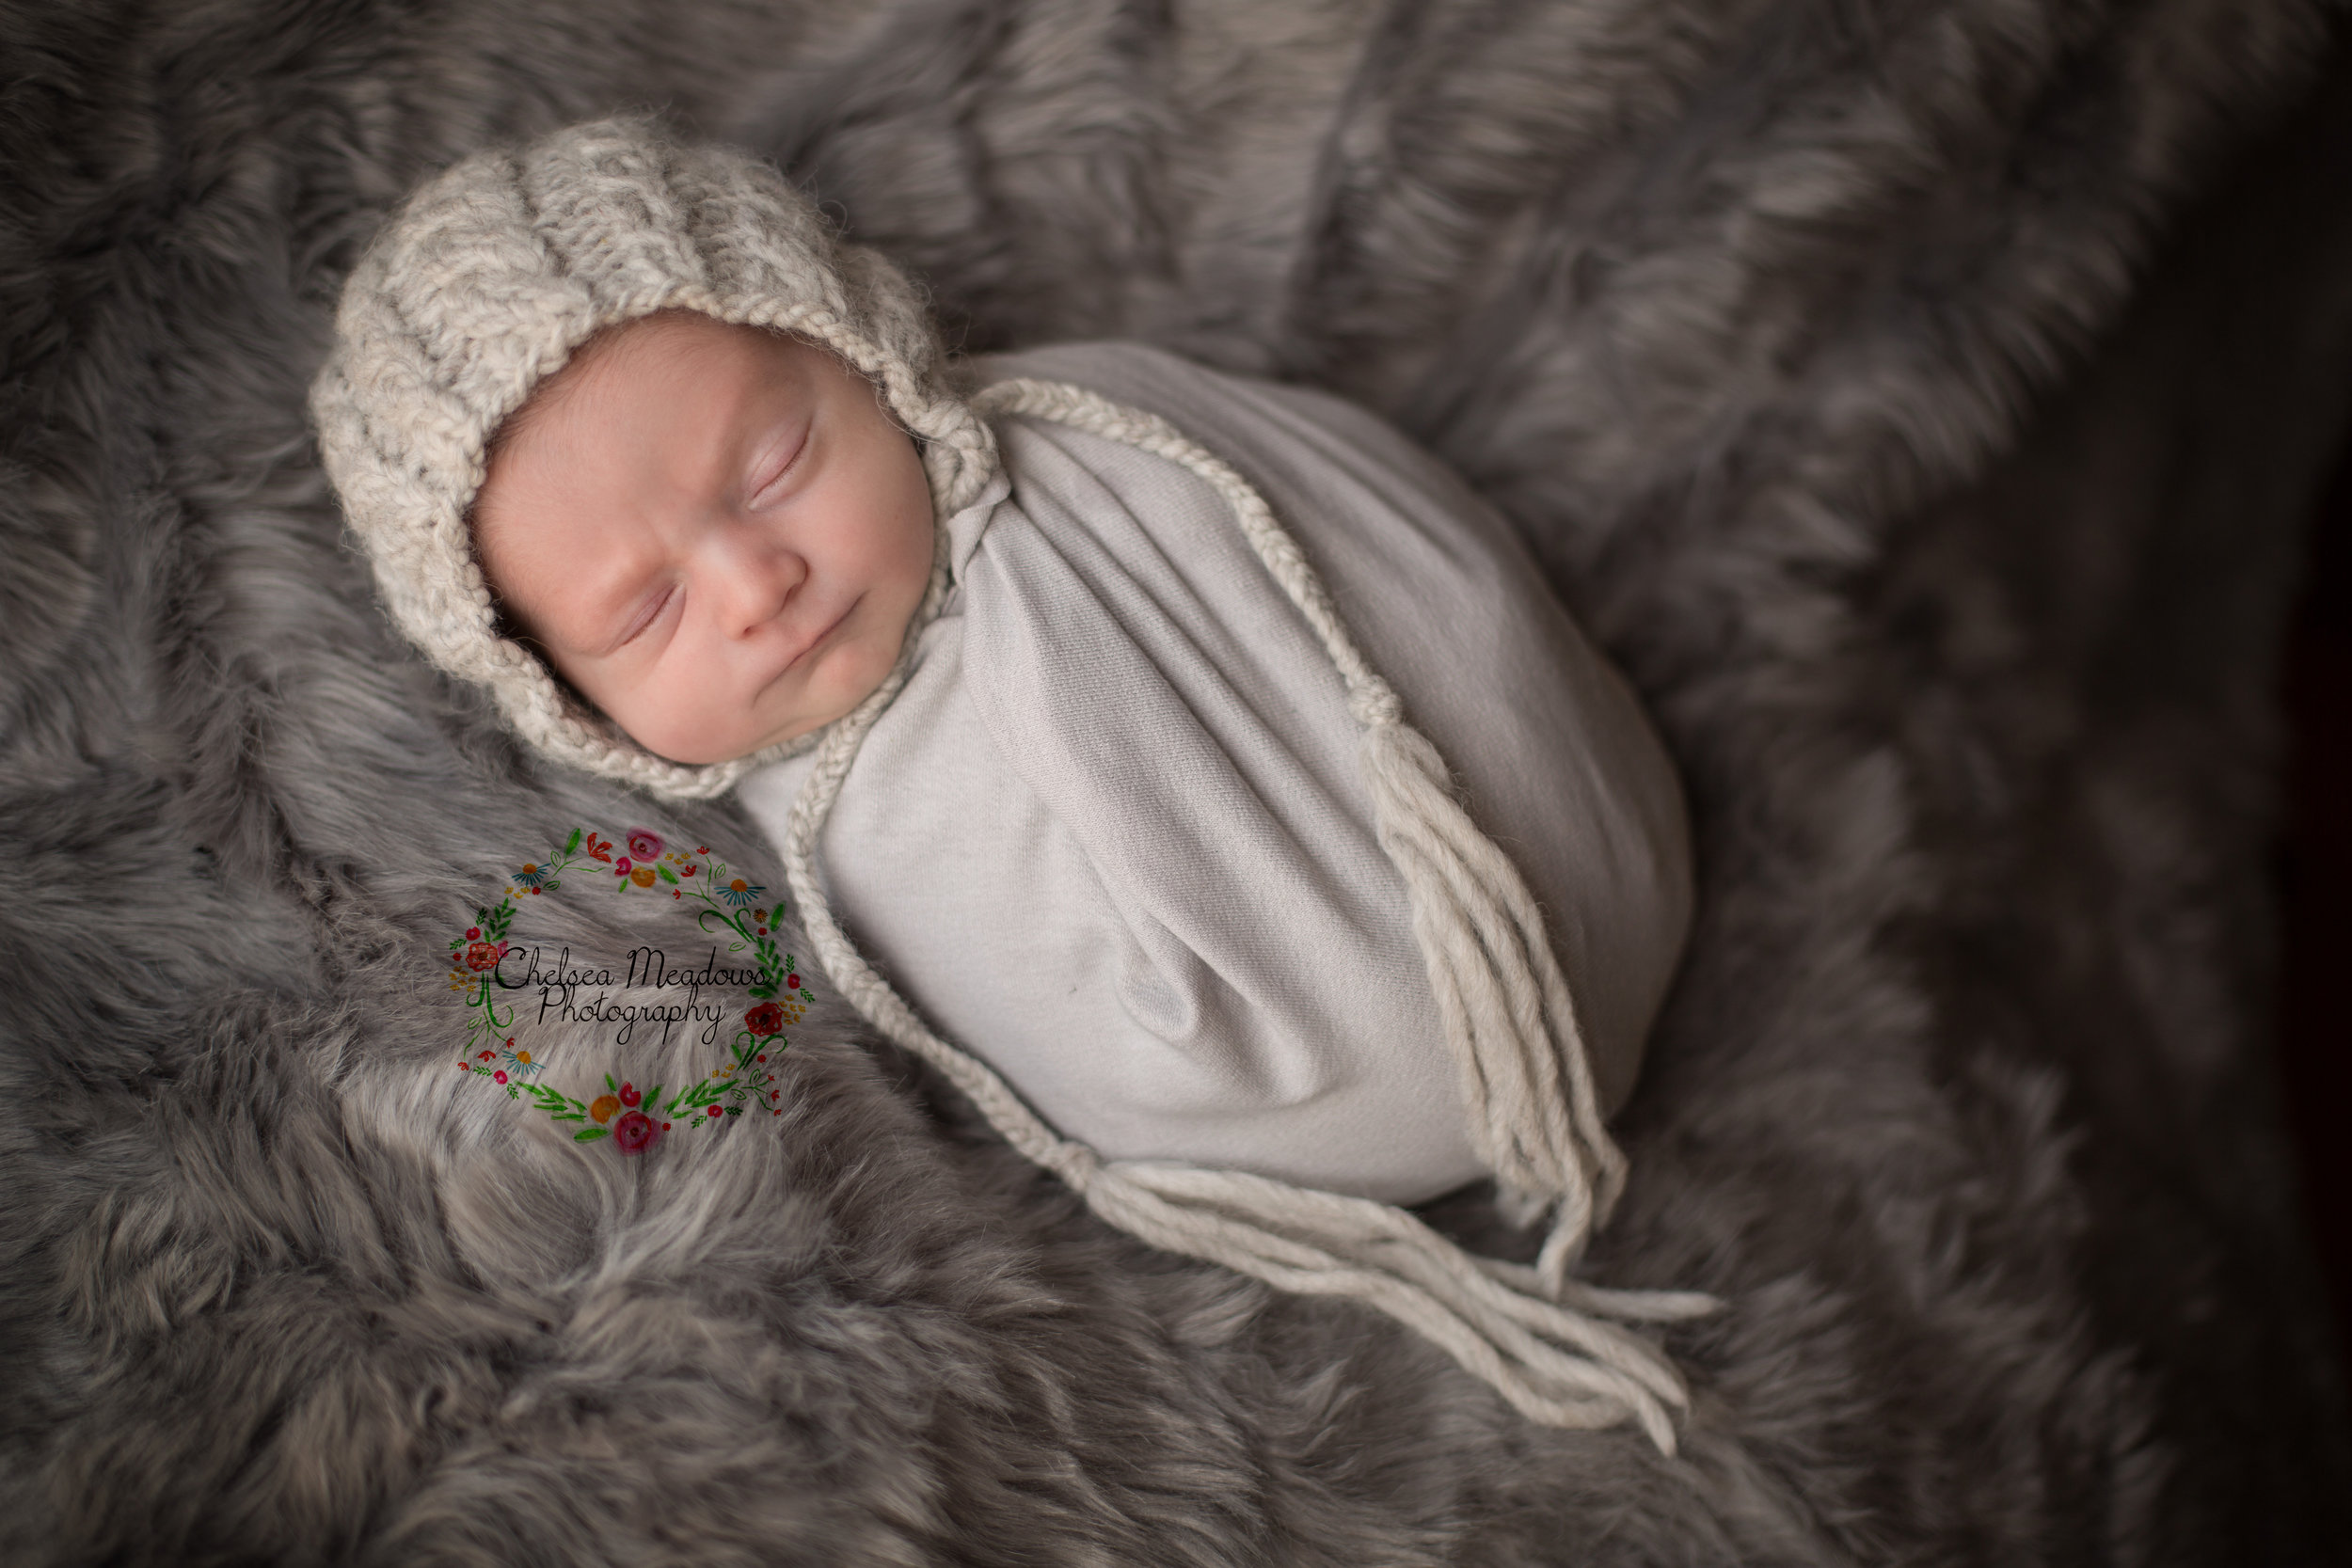 Mark Newborn Session - SM - chelsea Meadows Photography (11).jpg